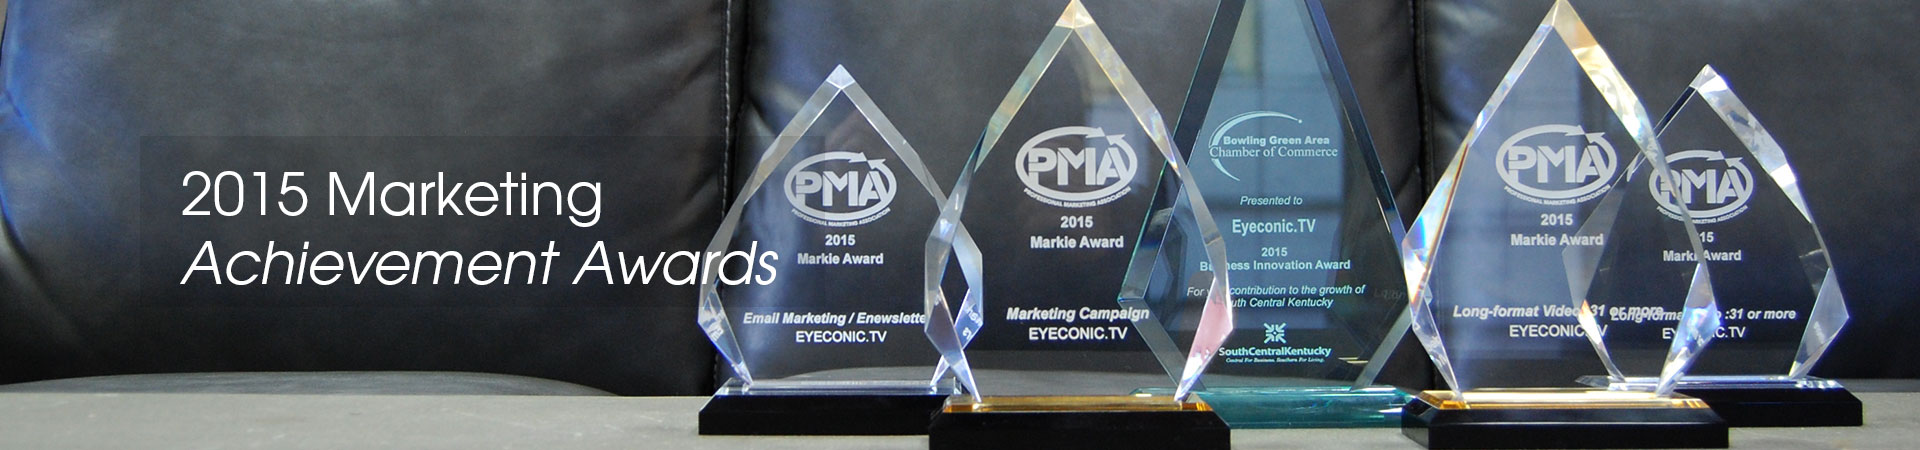 pma-awards-slider